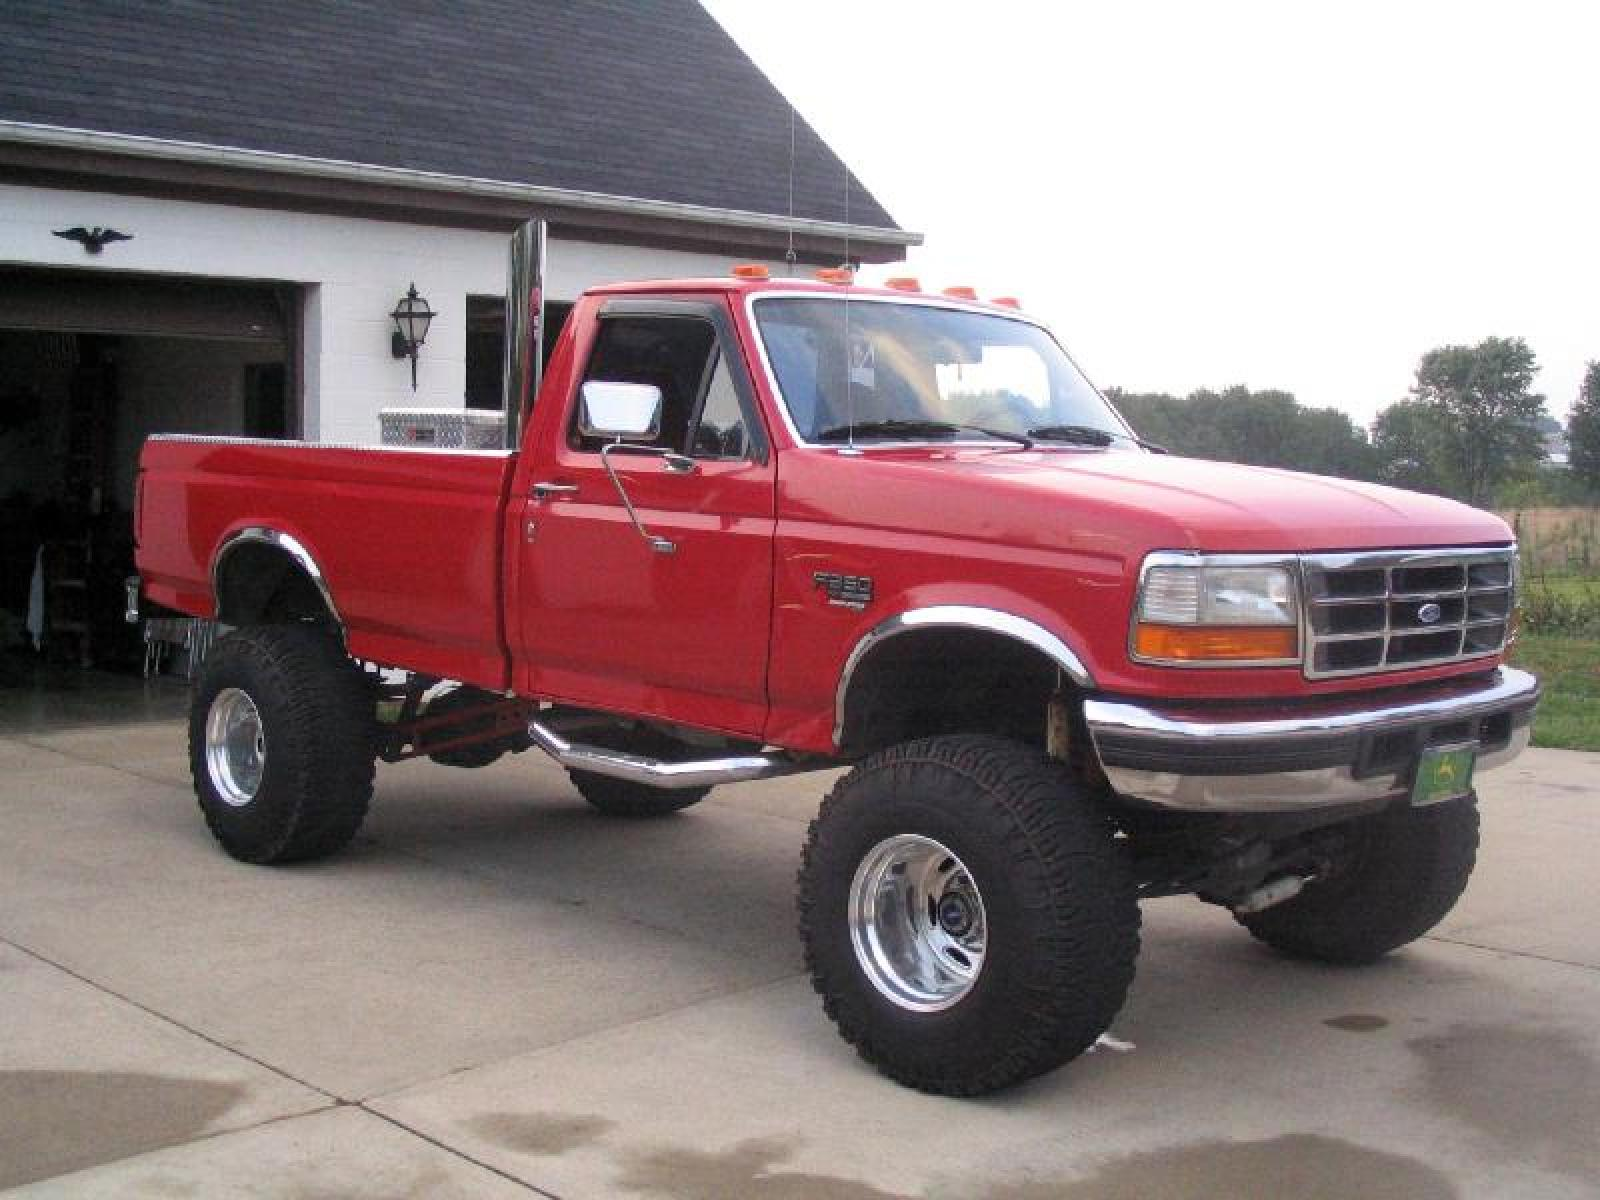 1994 Ford F-350 - Information and photos - Zomb Drive